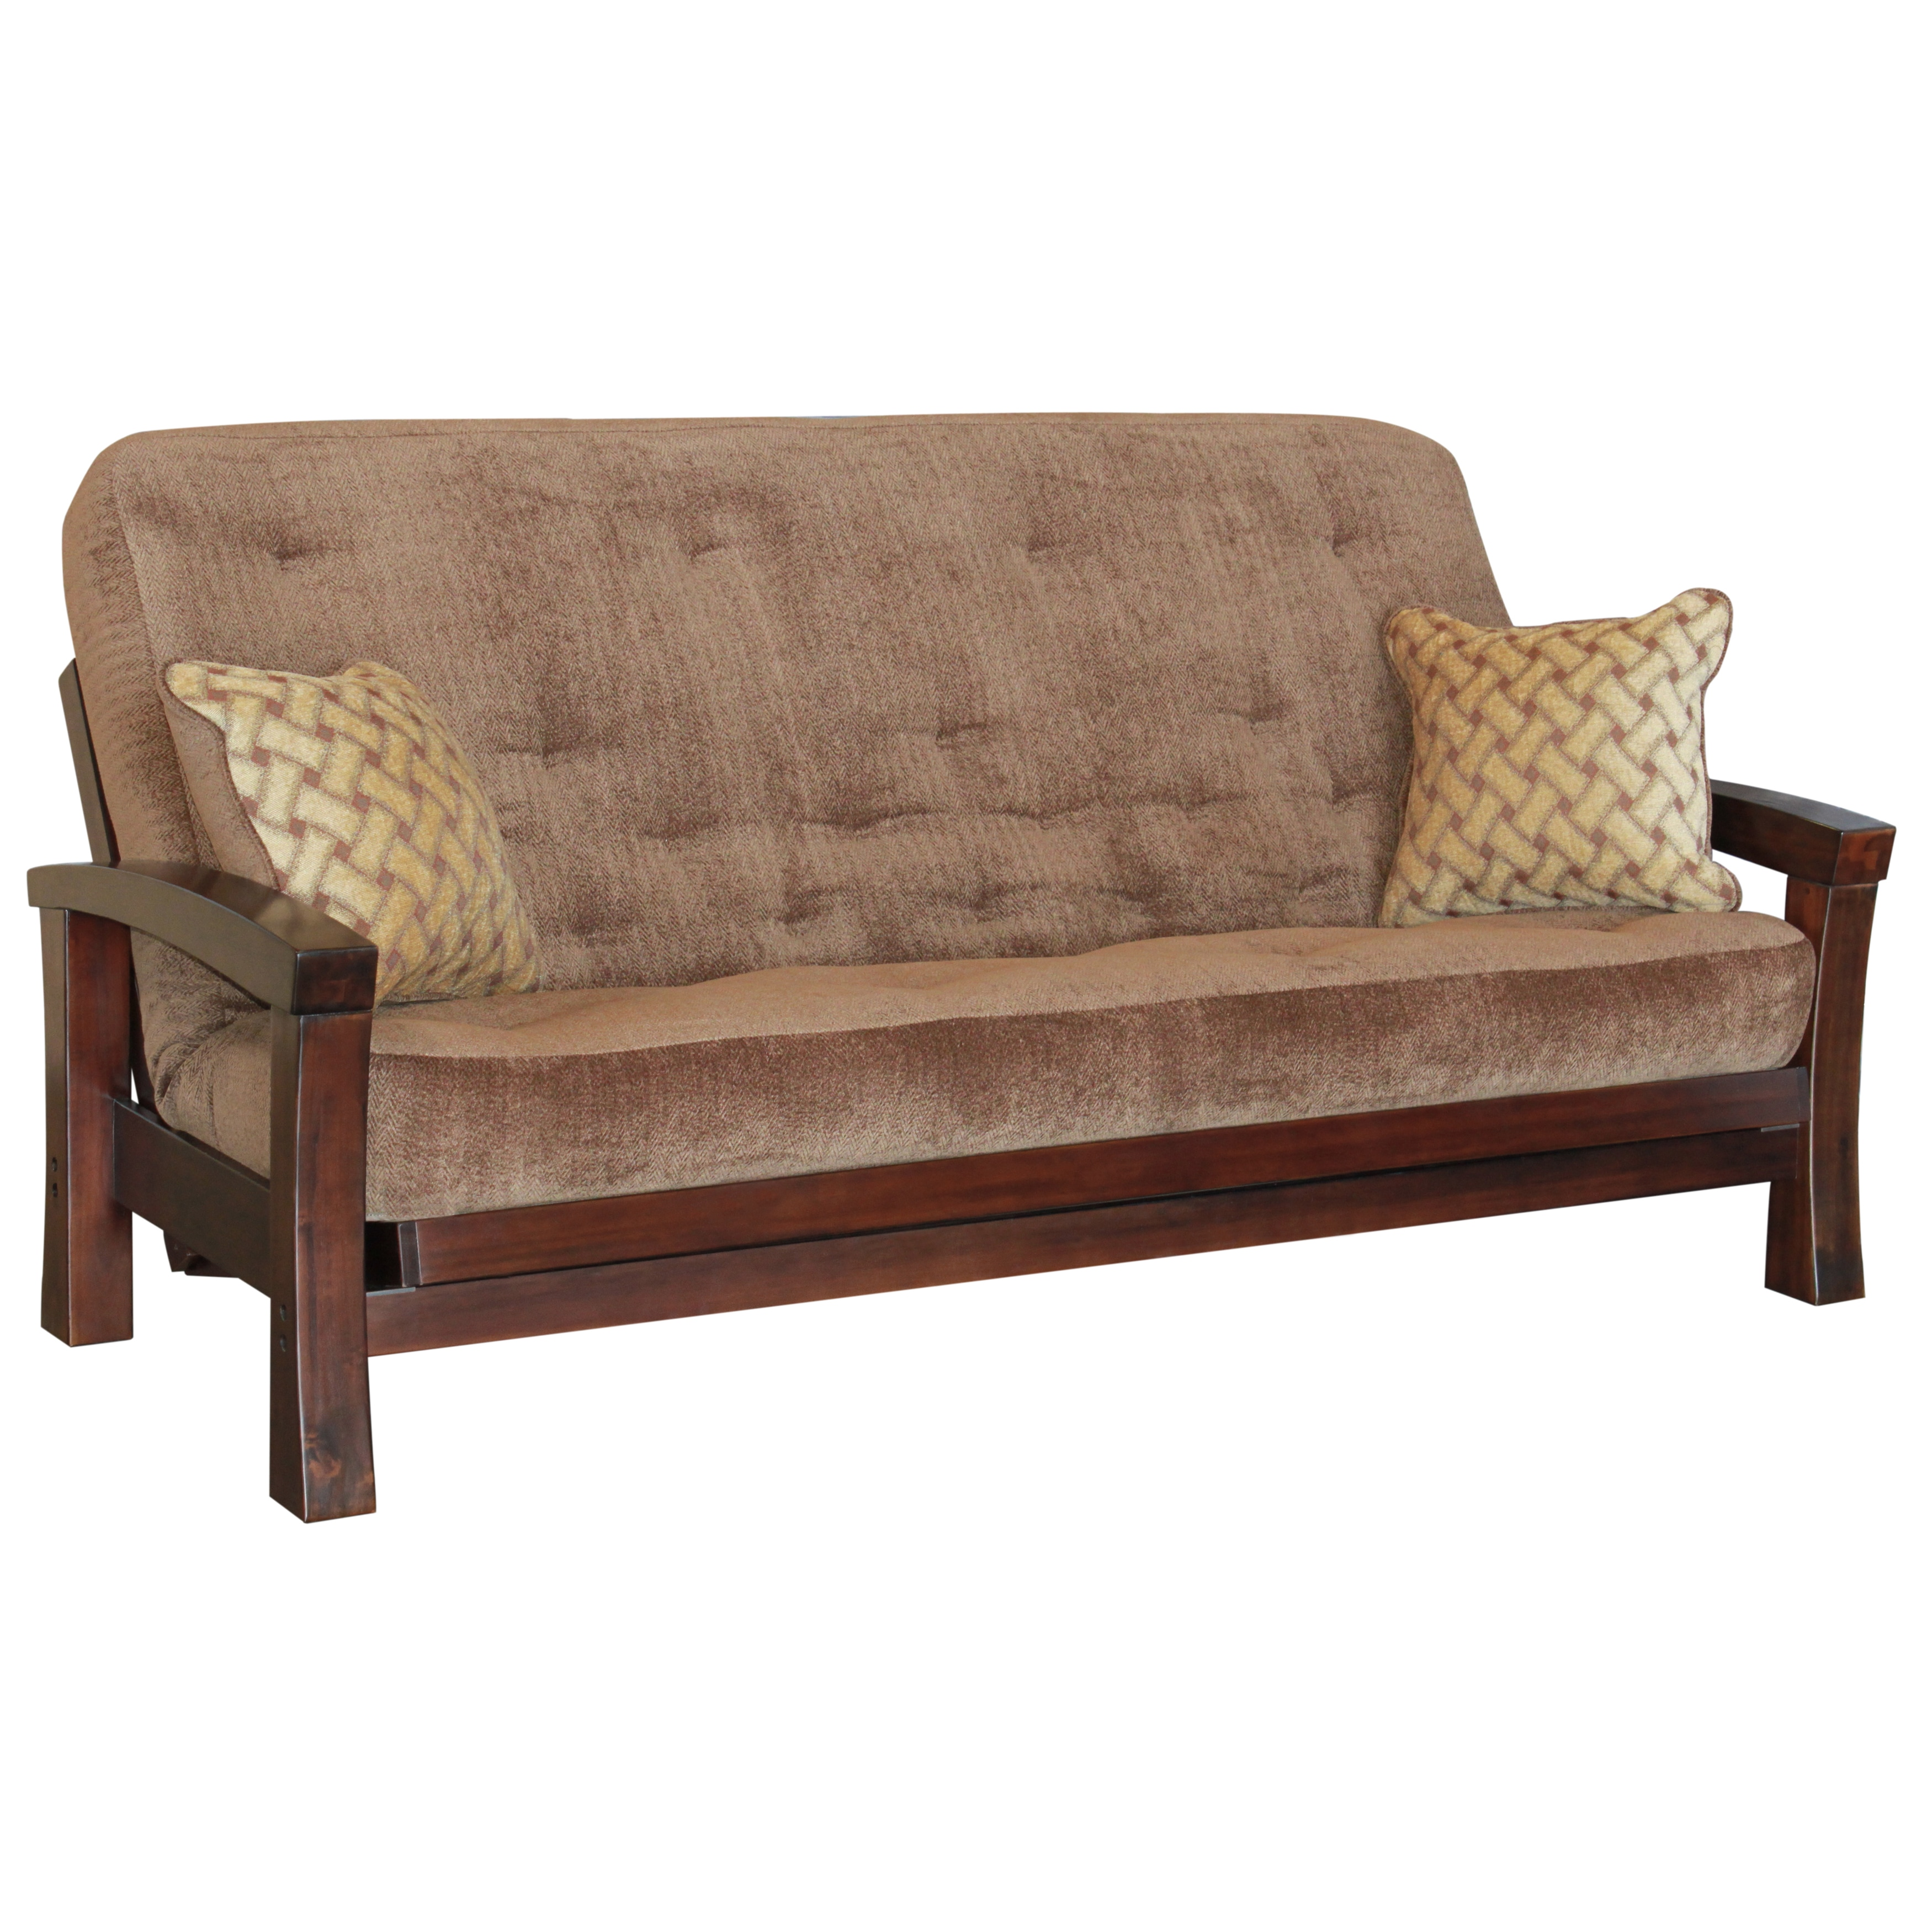 Big Tree Furniture Tao Futon Sofa Sleeper at Sears.com